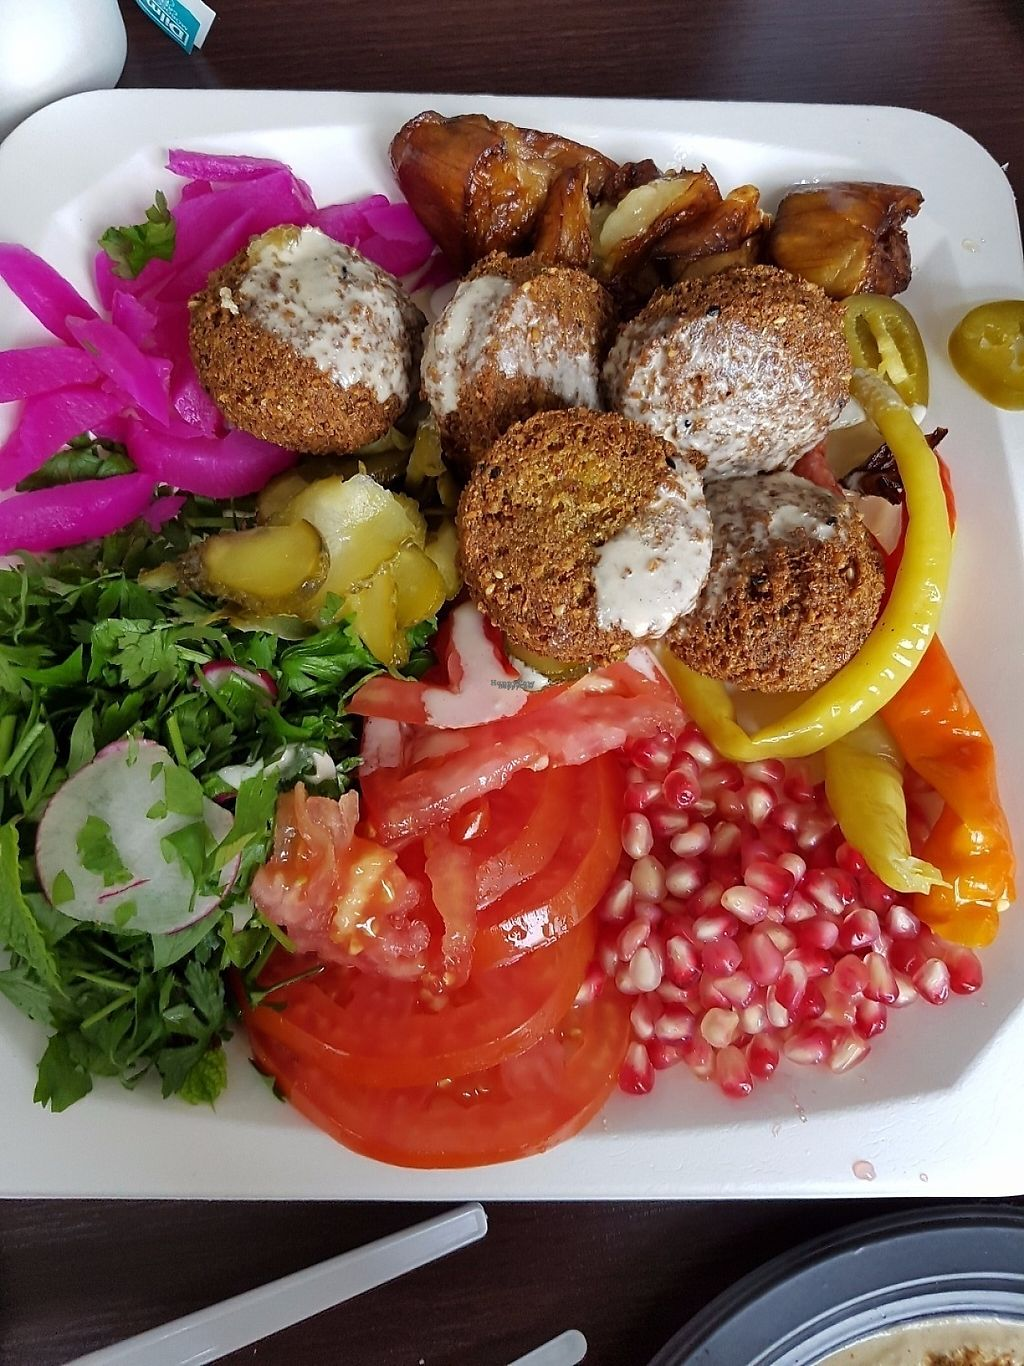 """Photo of Falafel Bejrut - Nowolipki  by <a href=""""/members/profile/japonka"""">japonka</a> <br/>Plate with falafel <br/> January 26, 2017  - <a href='/contact/abuse/image/67895/217122'>Report</a>"""